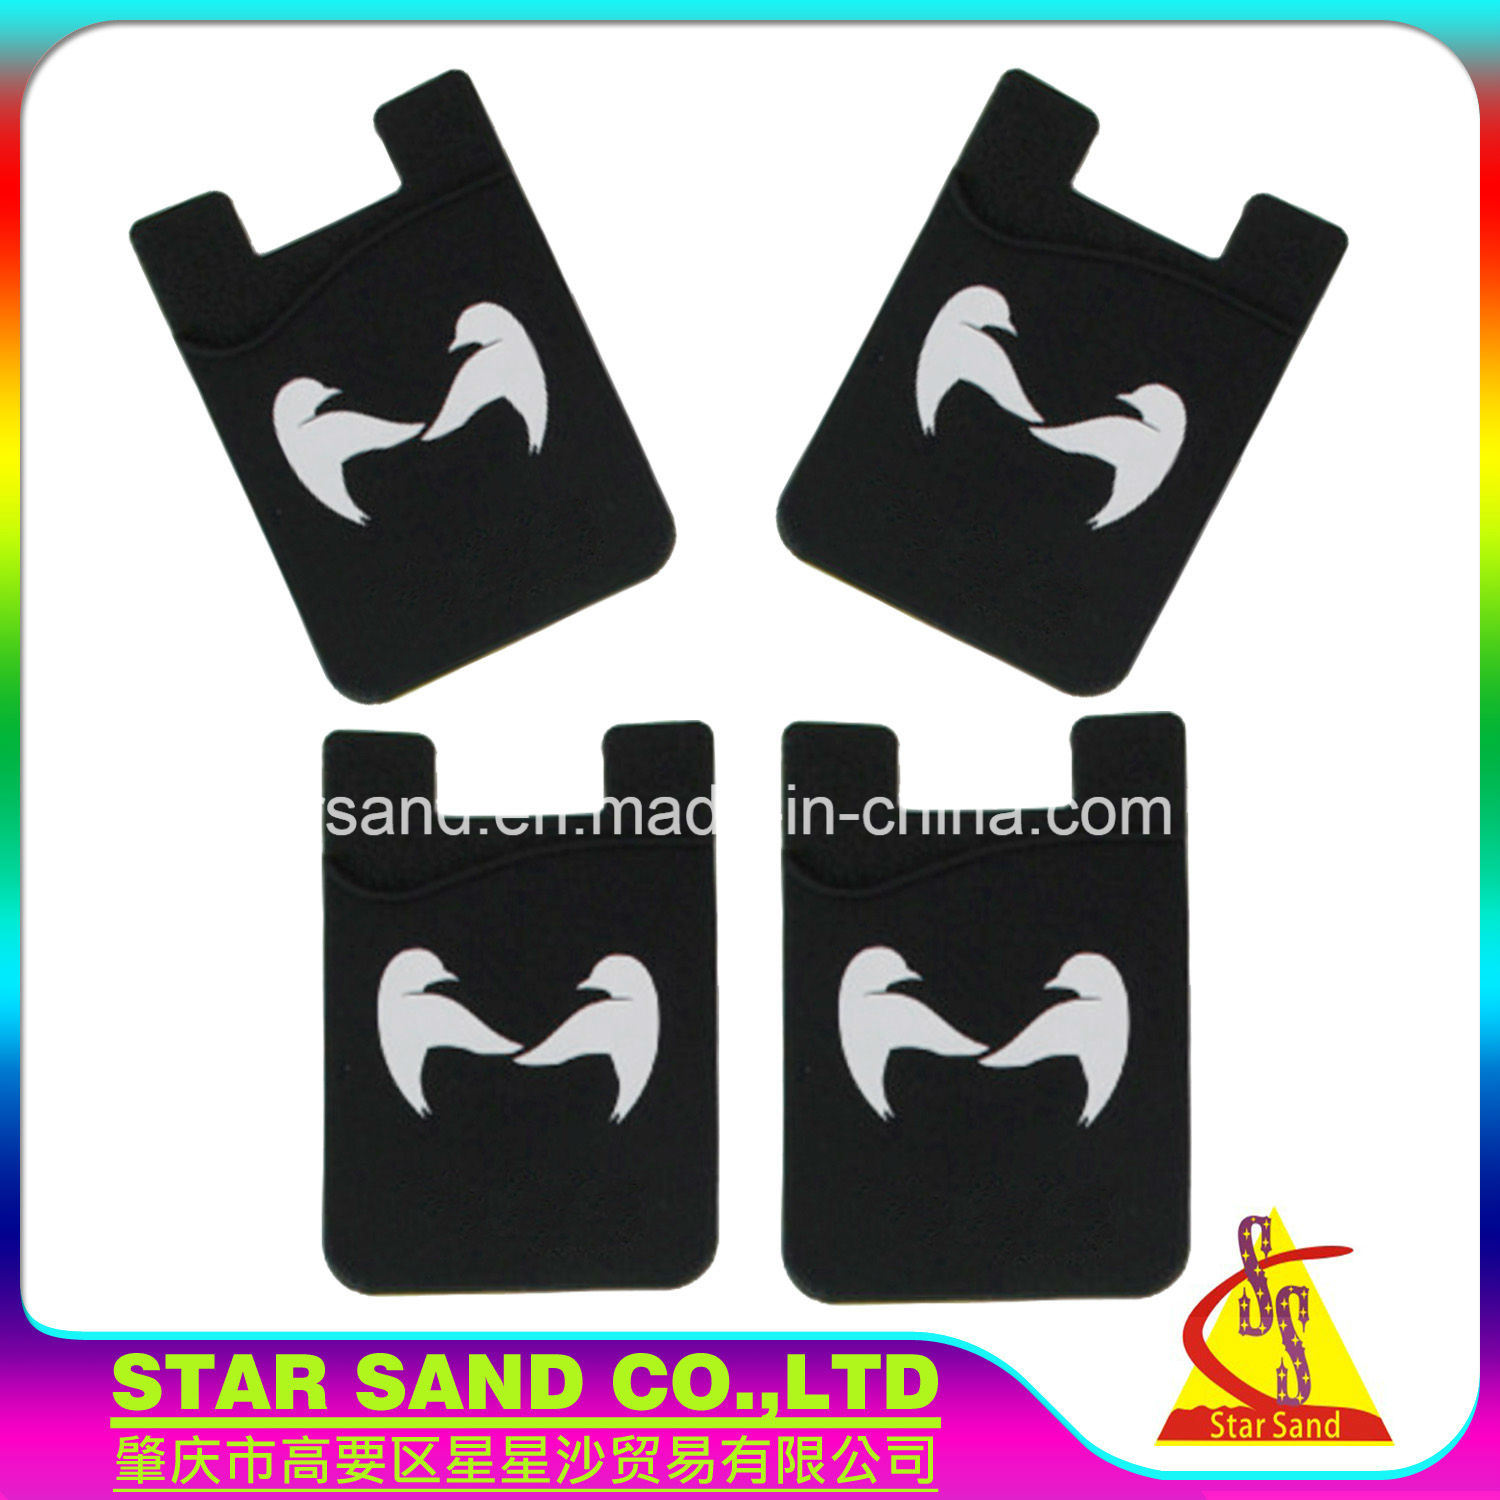 silicone car cellphone business card holder anti slip mount phone wallet - Cell Phone Business Card Holder